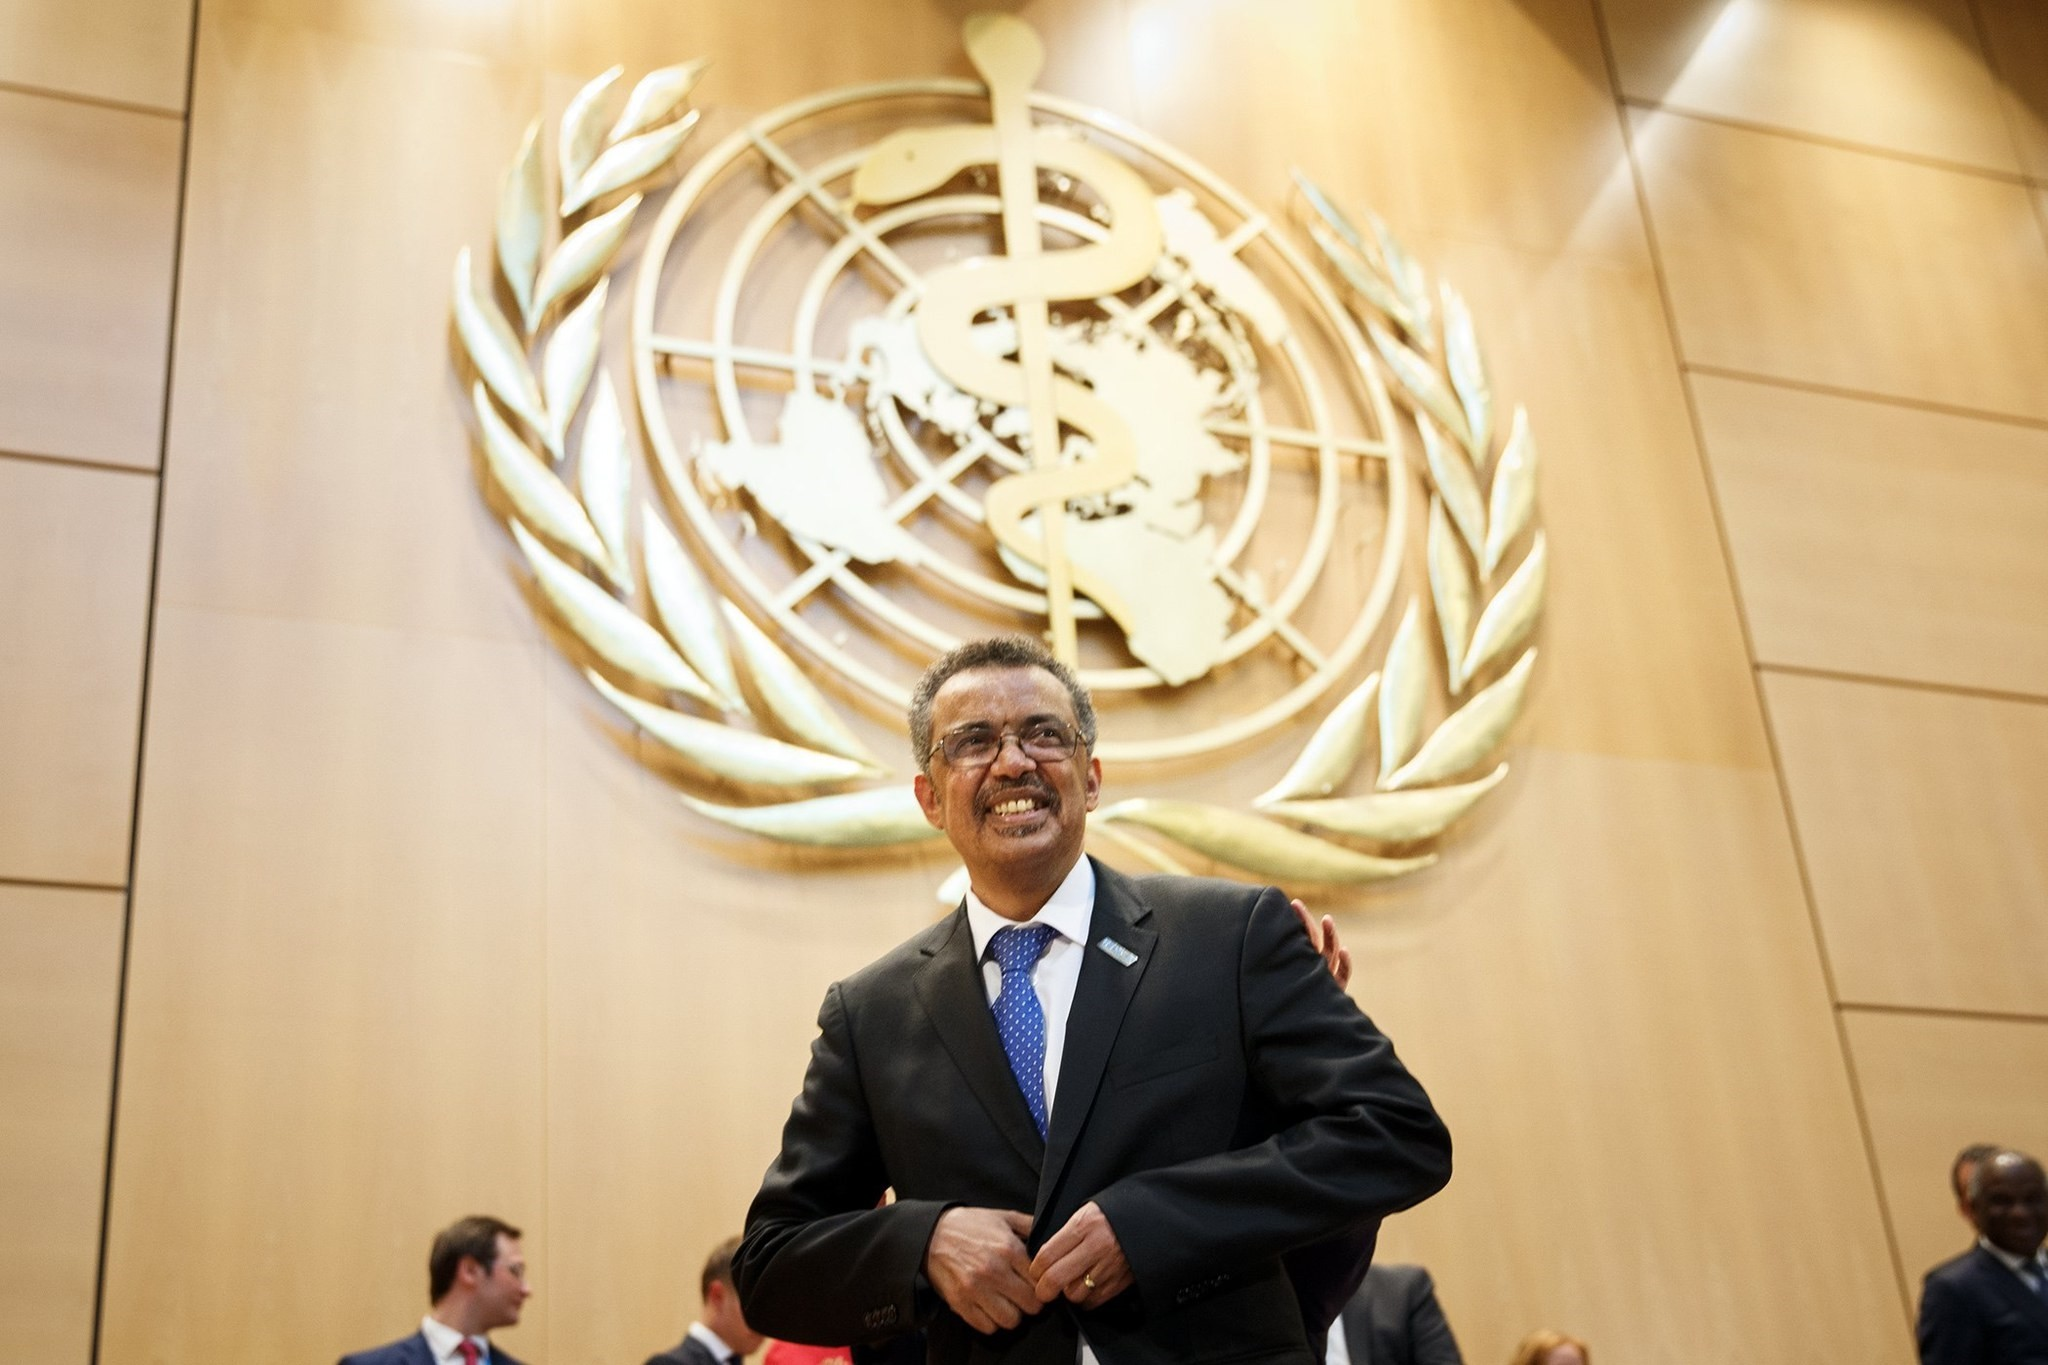 Dr Tedros Adhanom Ghebreyesus newly elected as Director General of the World Health Organization (WHO), smiles to the audience after his election during the 70th World Health Assembly at the European headquarters of the UN. (EPA Photo)